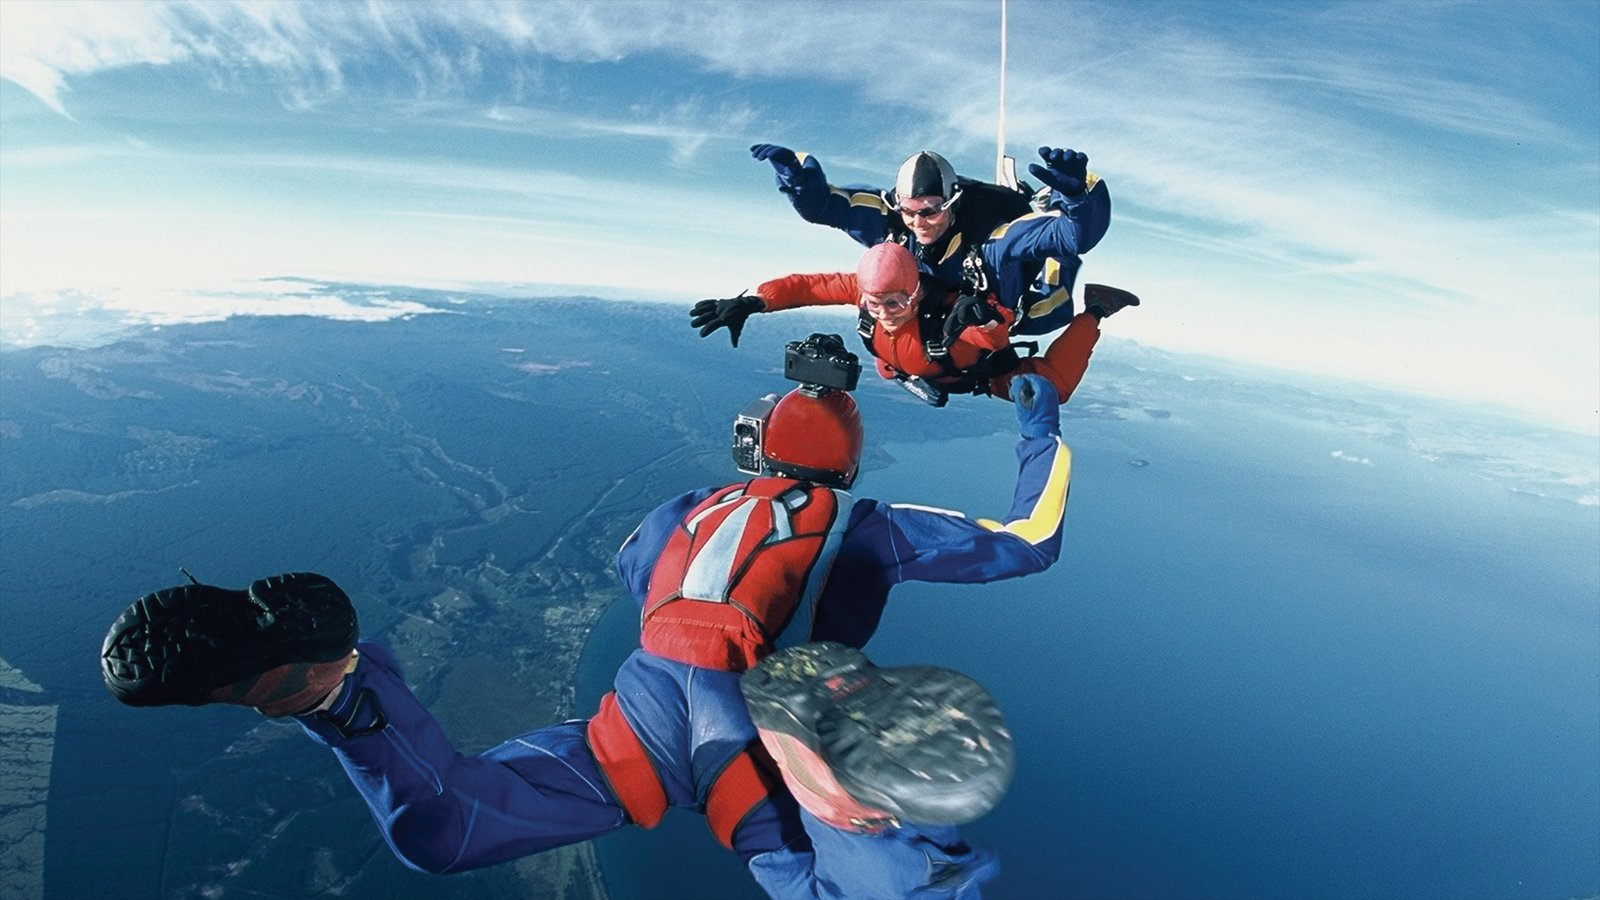 Taupo which includes a sporting event and skydiving as well as a small group of people